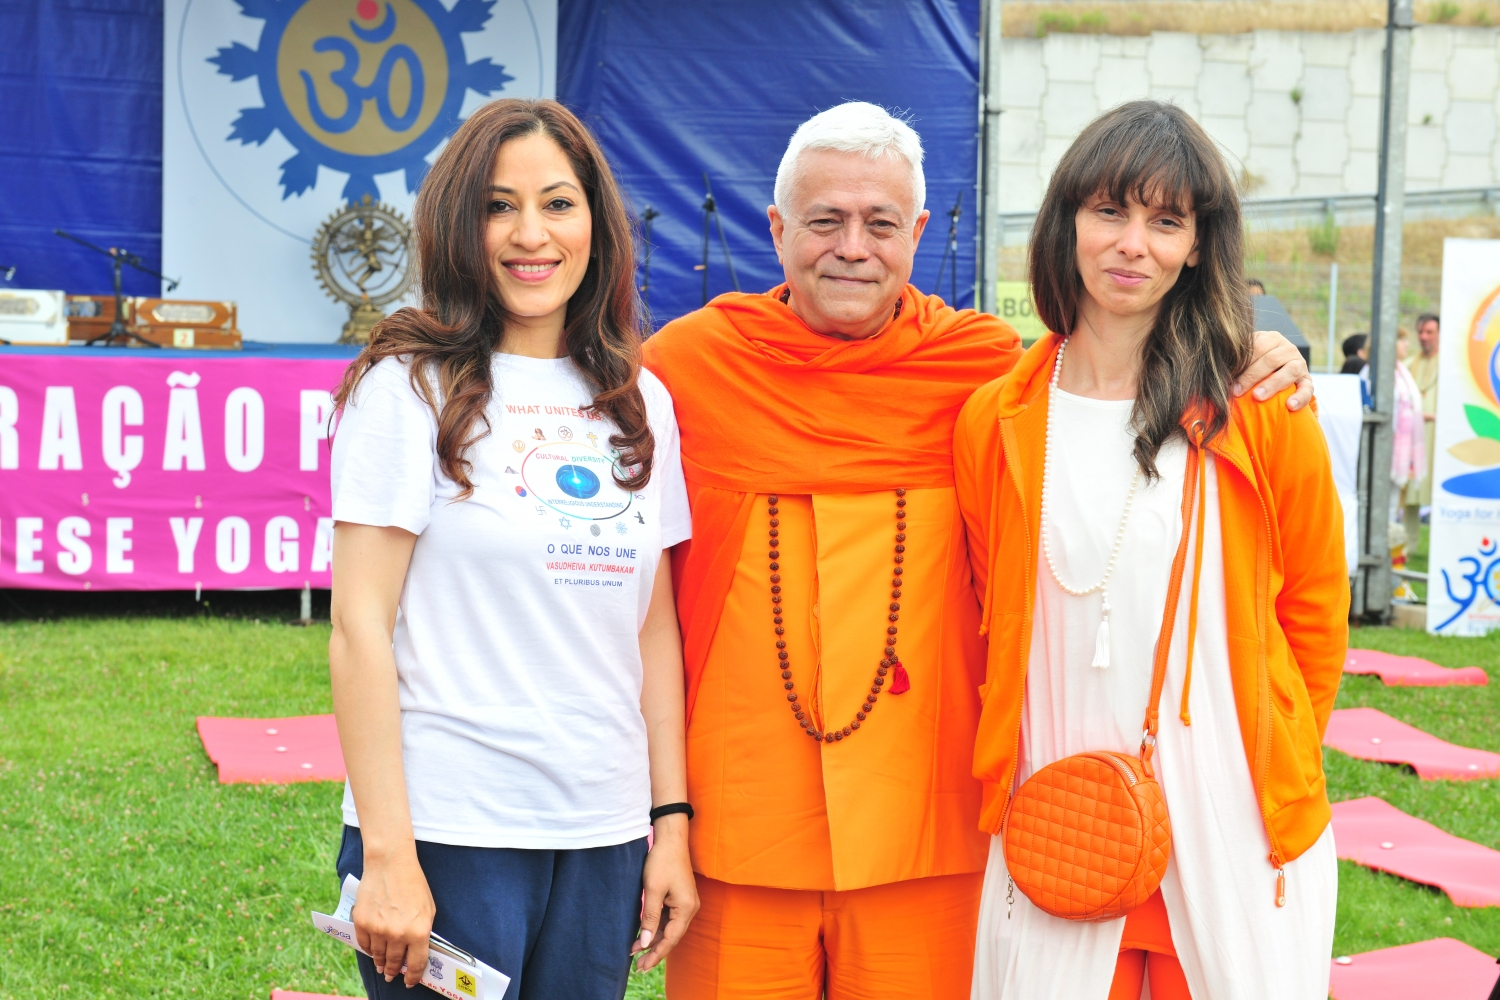 Commemoration of the International Day of Yoga - IDY - 2017 - Lisboa, Portugal